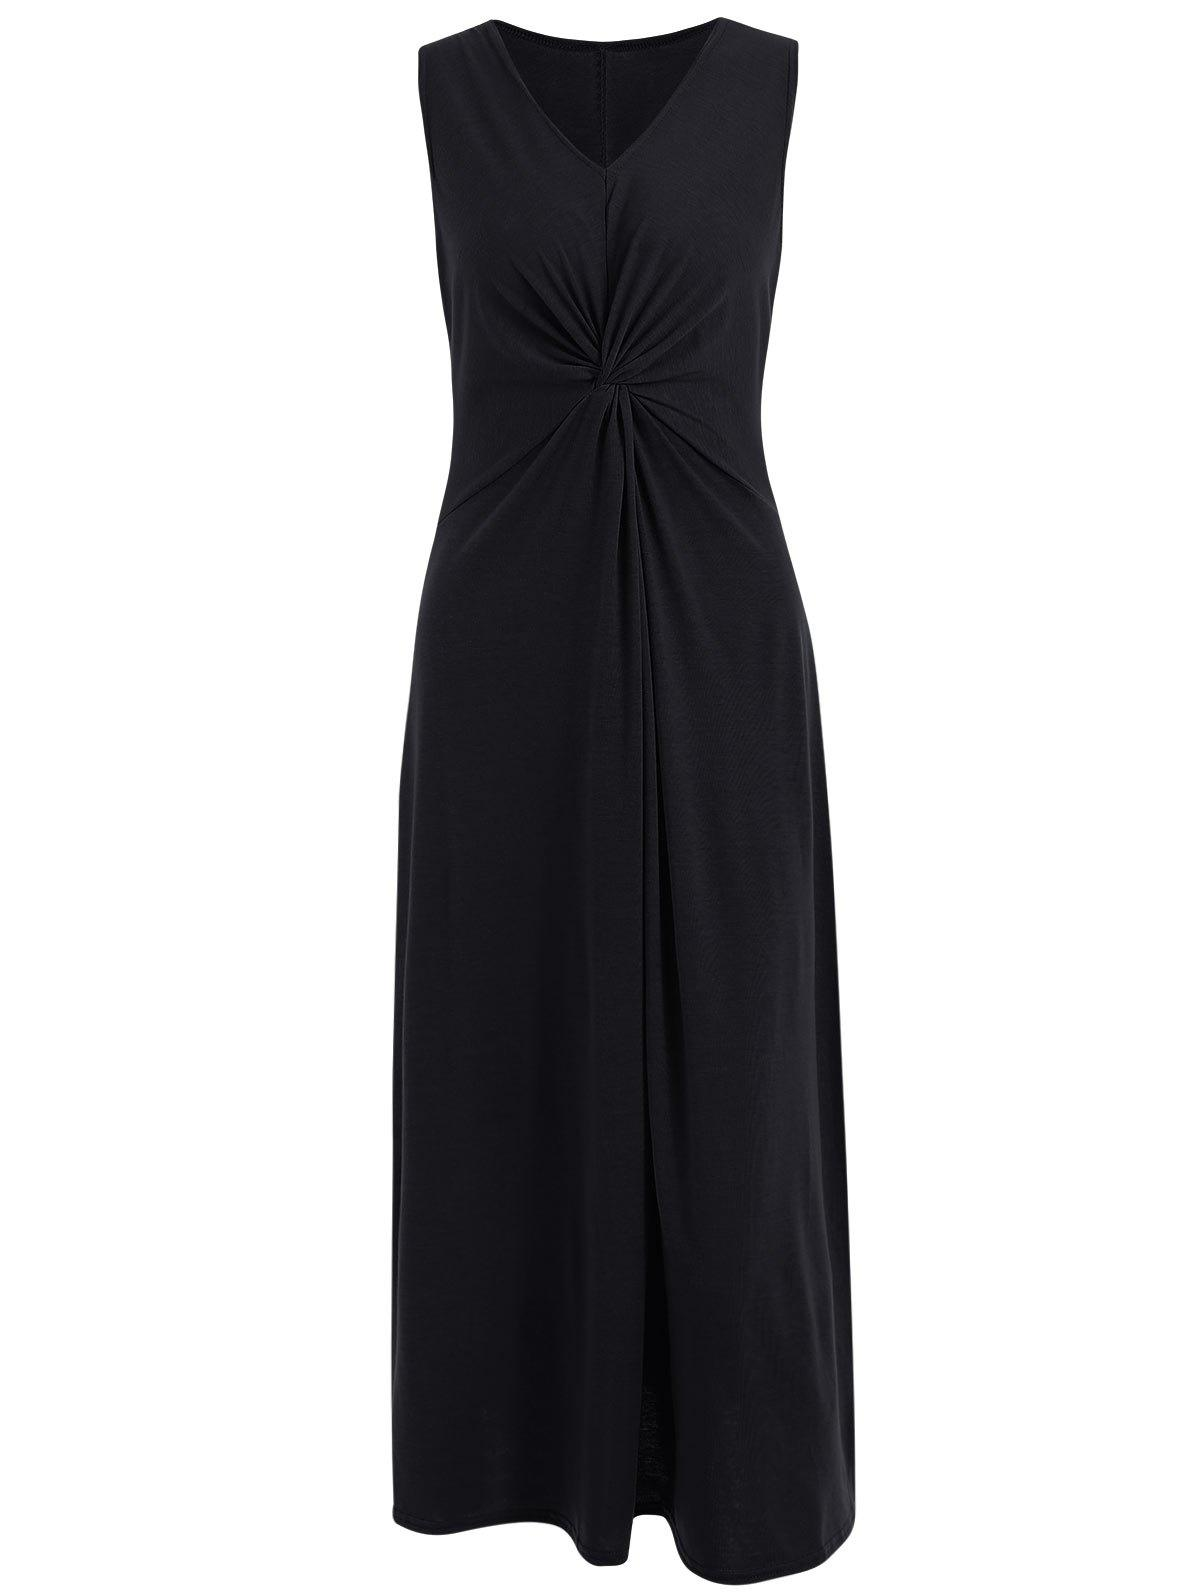 Shop Ruched Front Maxi Sleeveless Dress